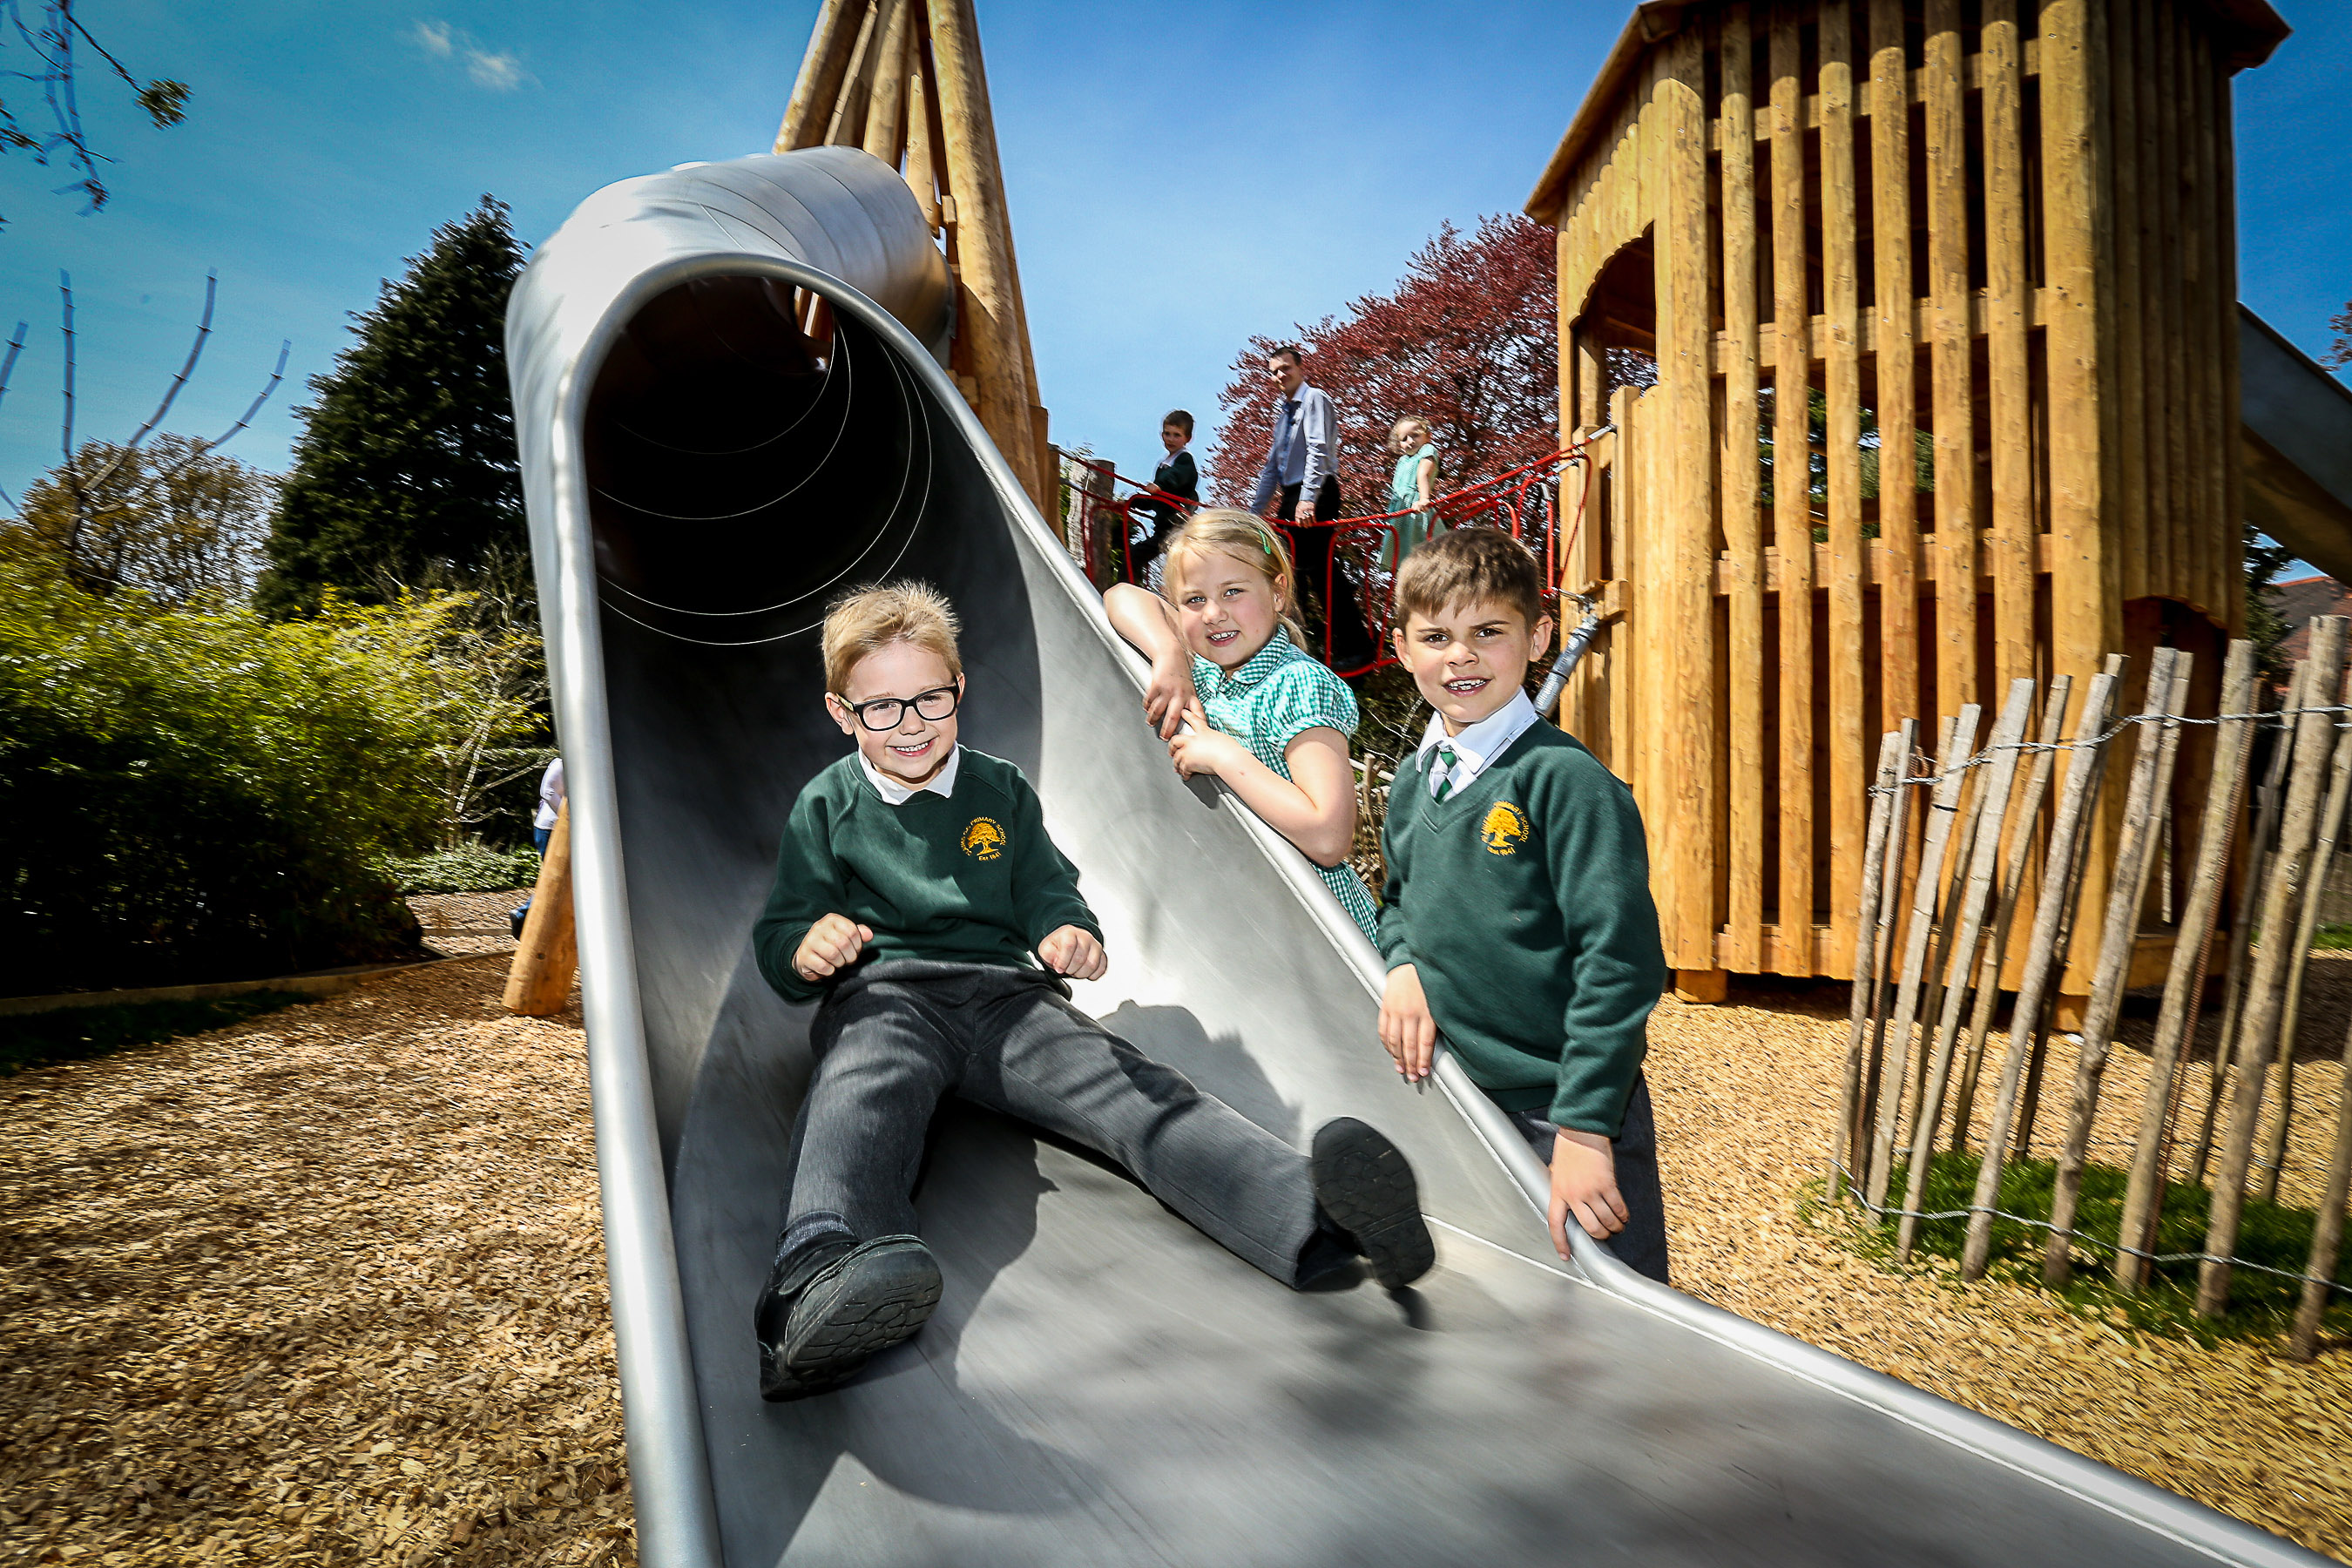 Brand New Playground In Time For School Holidays